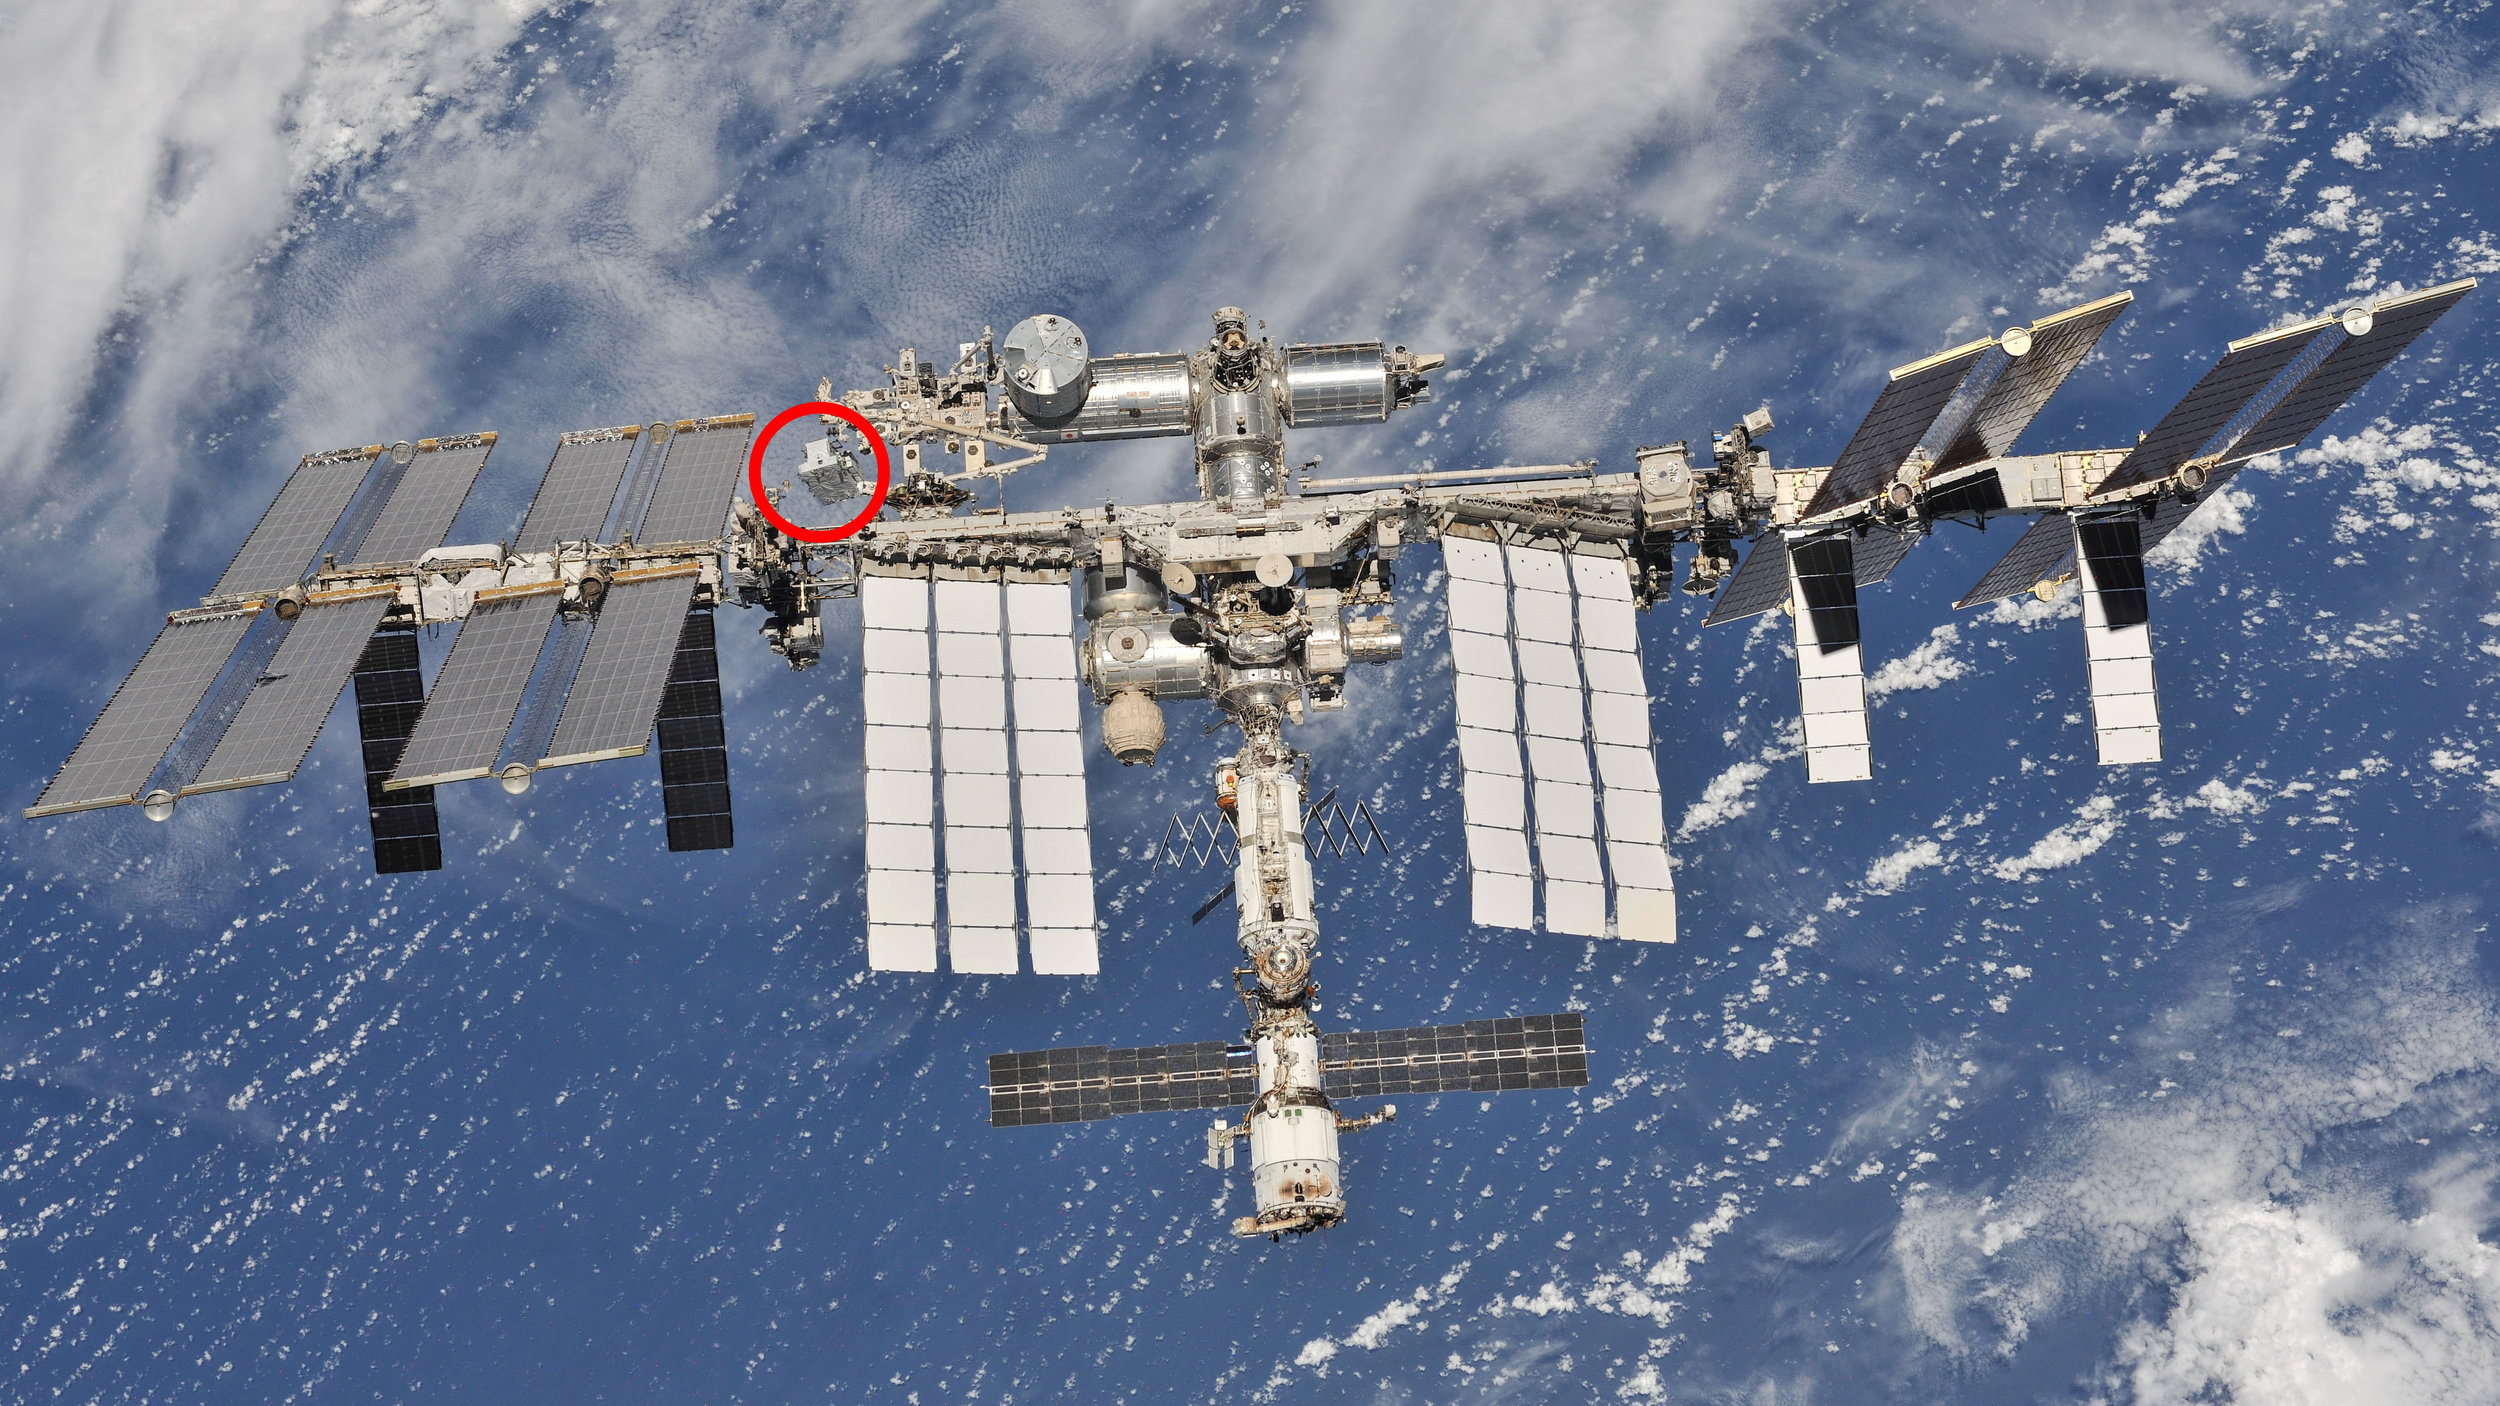 The location of the Exposed Pallet (seen in the red circle) as of the departure of Soyuz MS-08 on Oct. 4, 2018. Click for larger view. Credit: NASA/Roscosmos